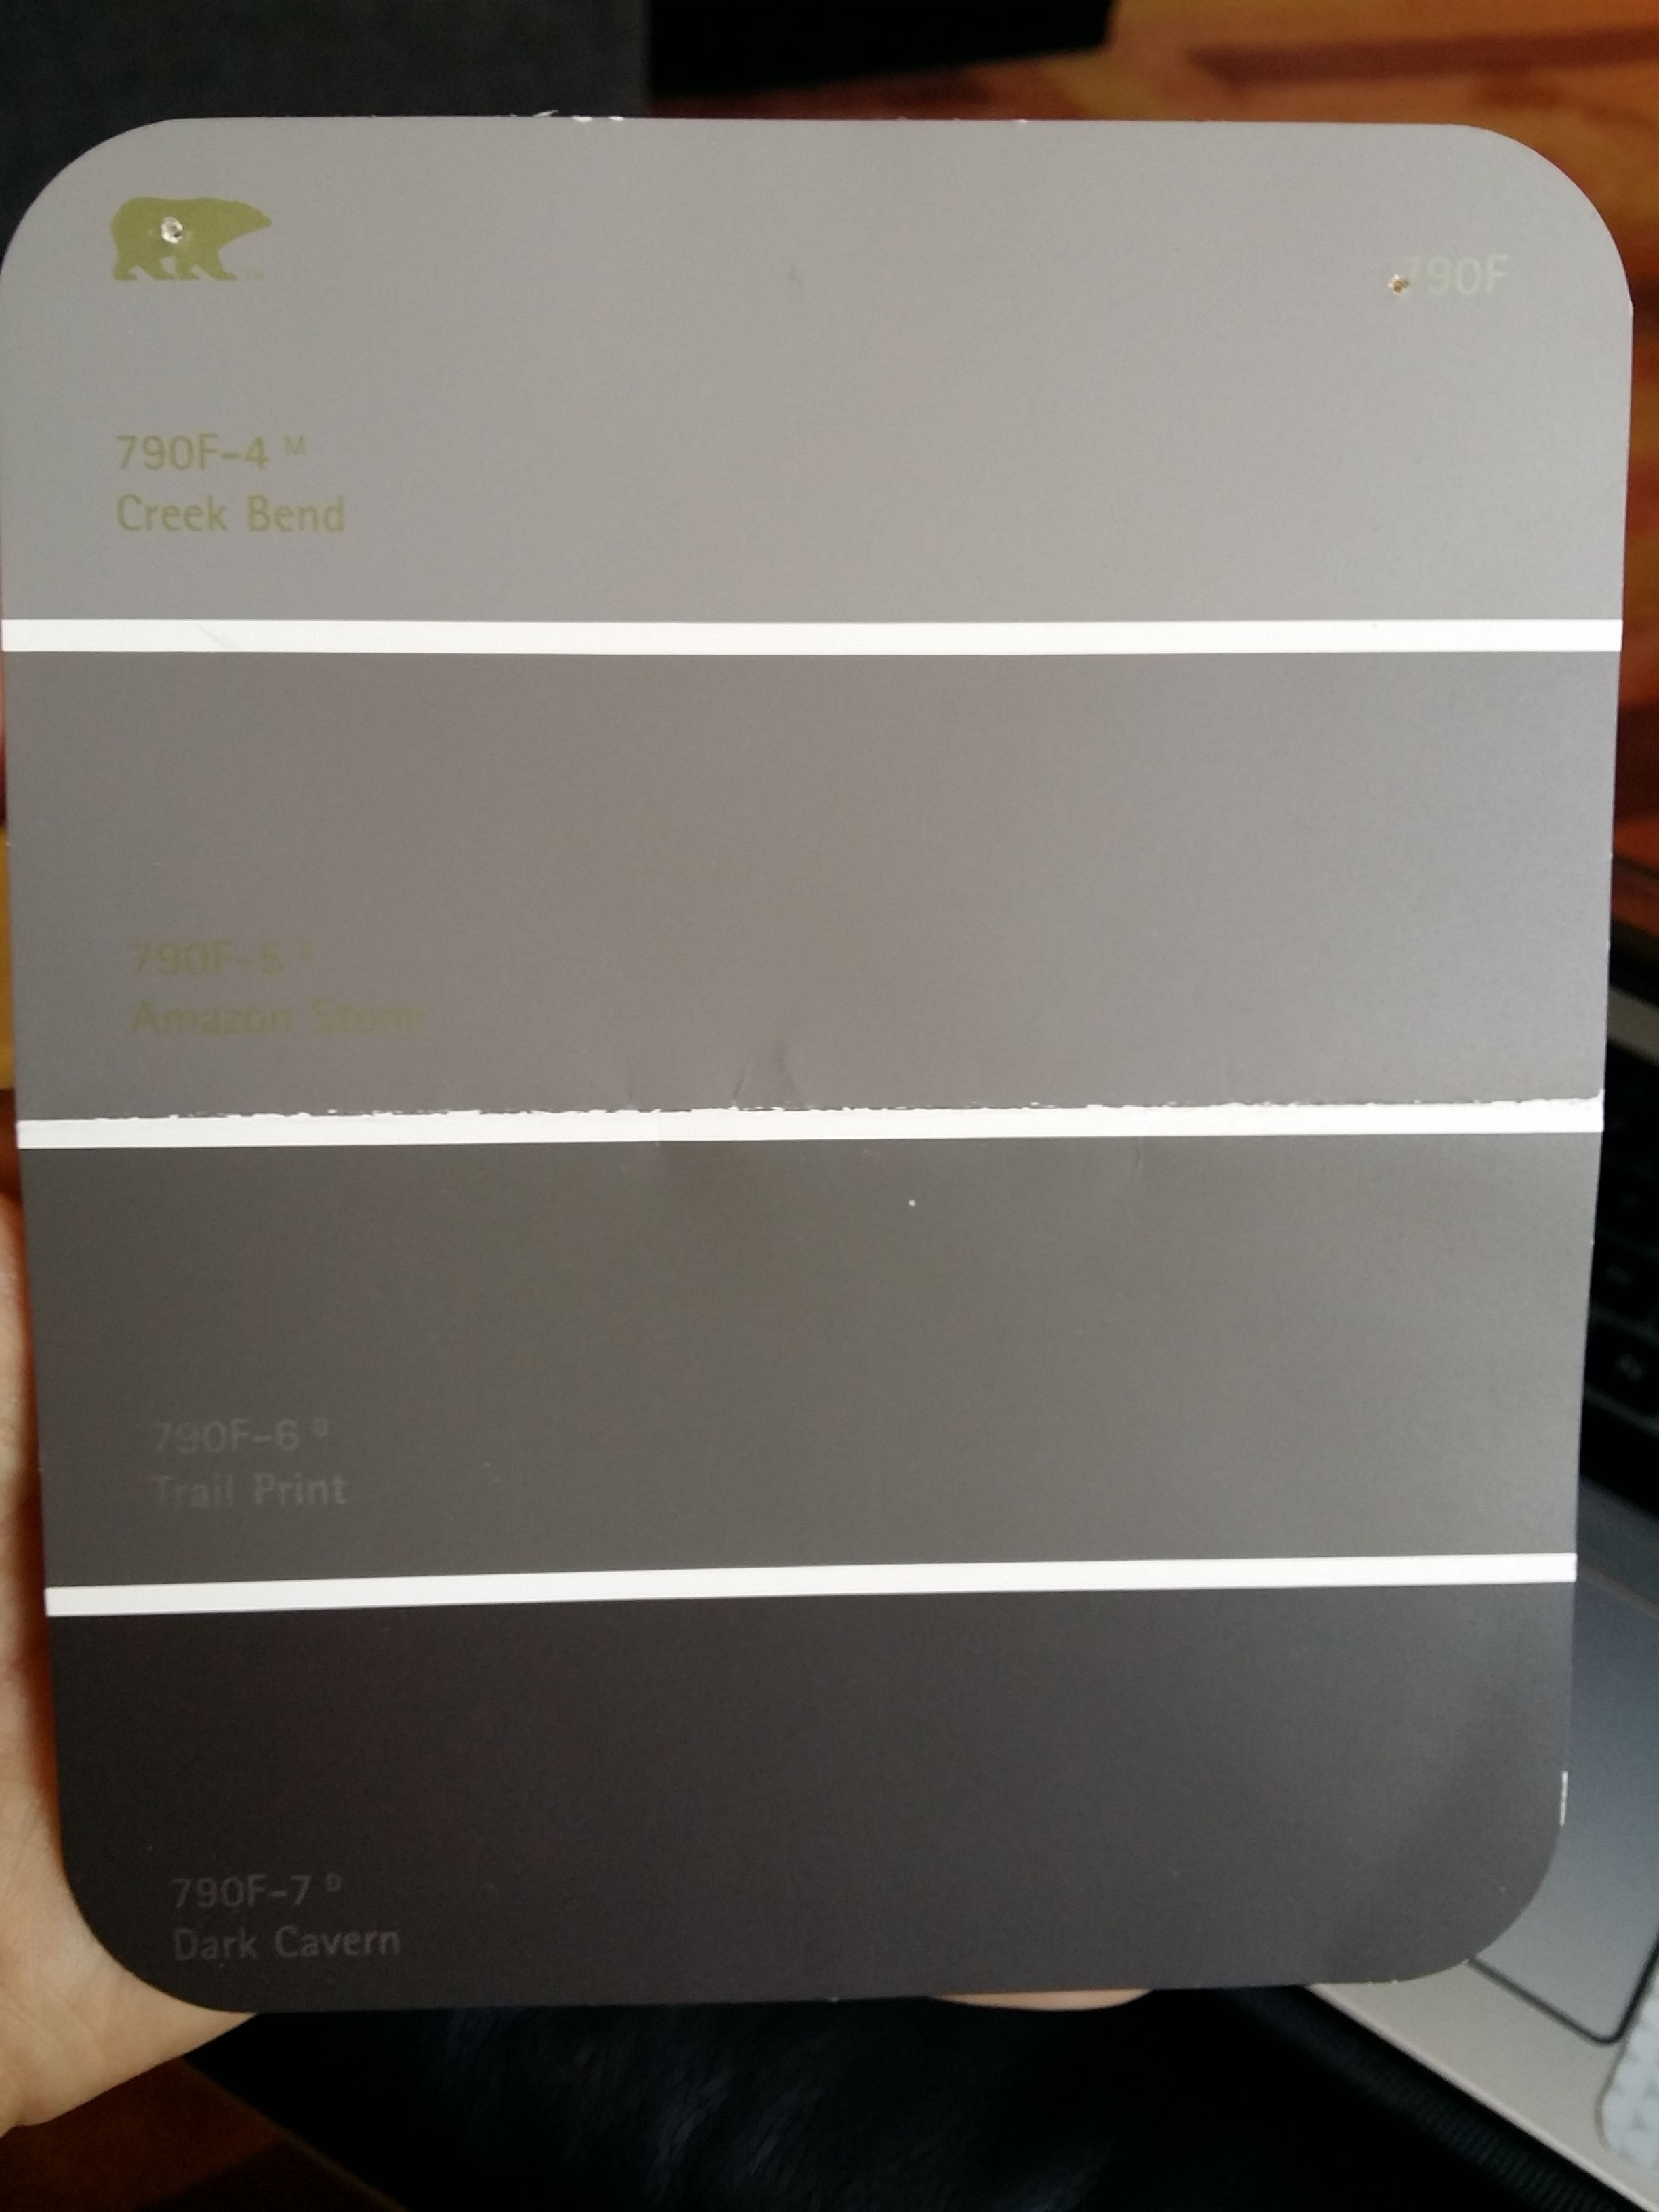 Behr Paint Lightest Color Creek Bend Use In Master